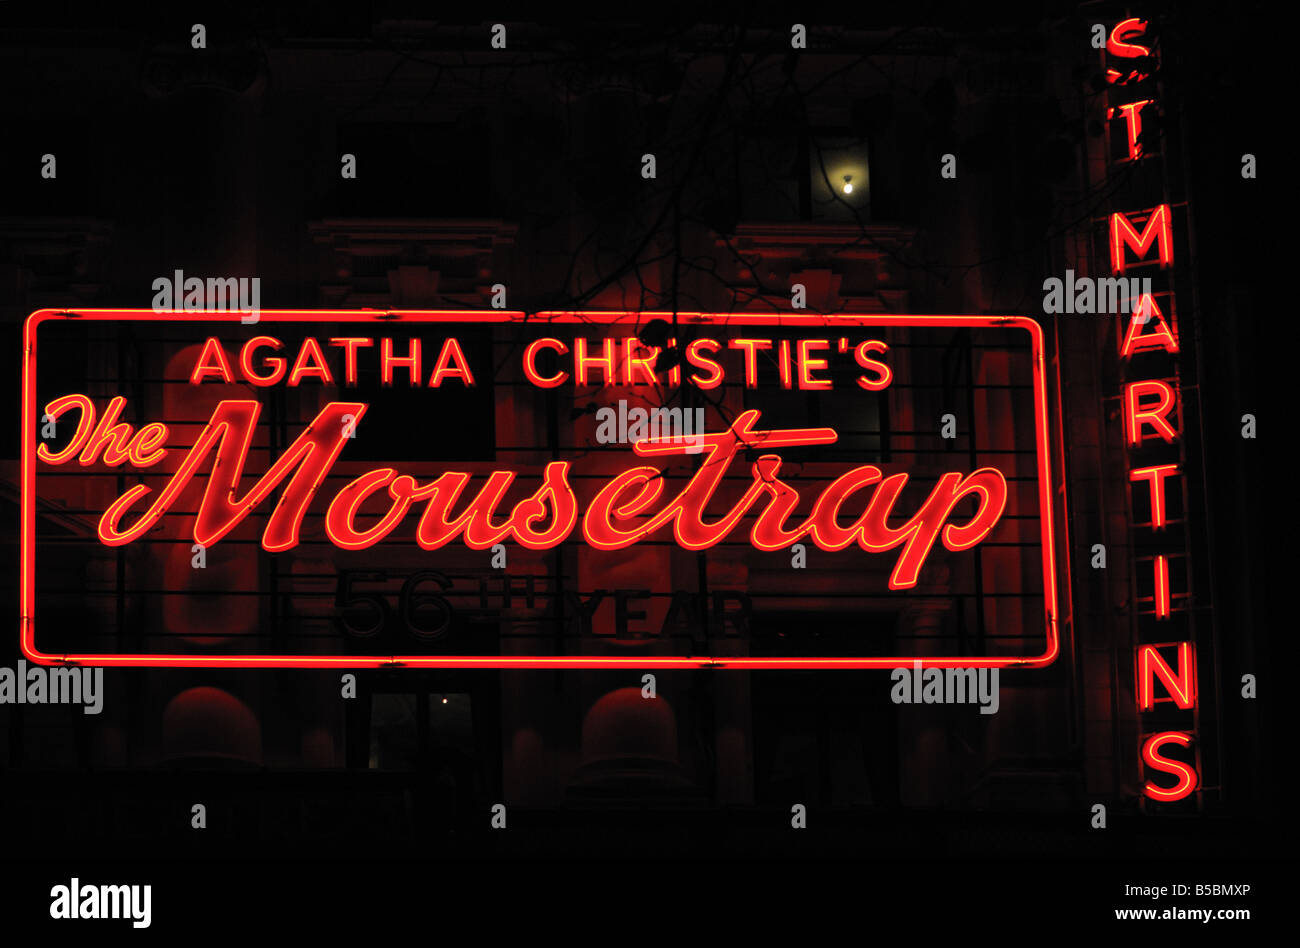 Agatha Christie s The Mousetrap at St Martins theatre London UK - Stock Image